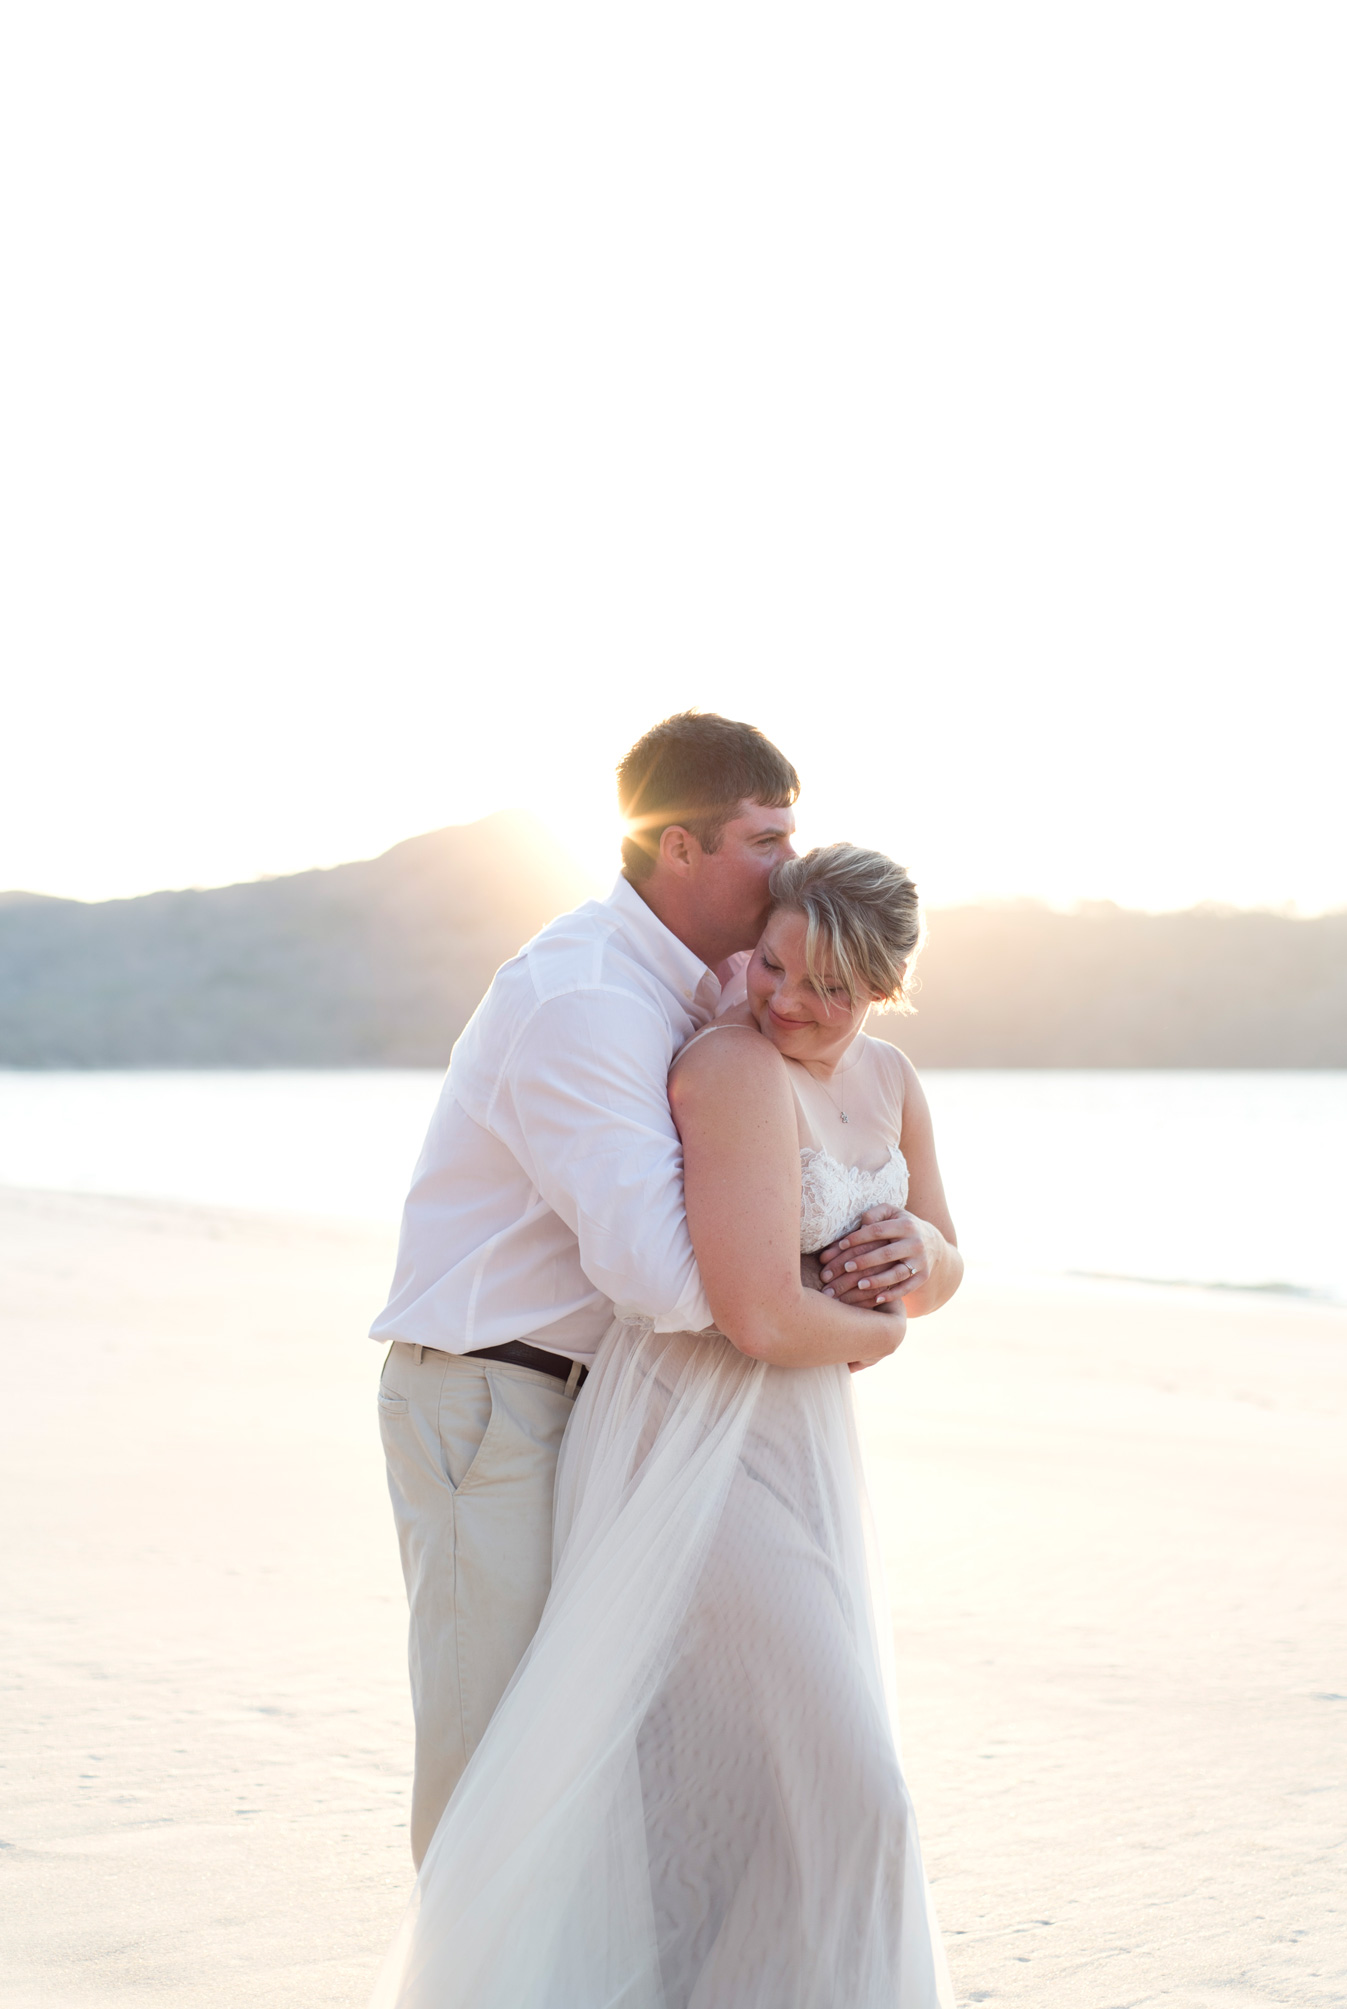 Groom hugging bride on Playa Conchal Wedding. Photographed by Kristen M. Brown, Samba to the Sea Photography.